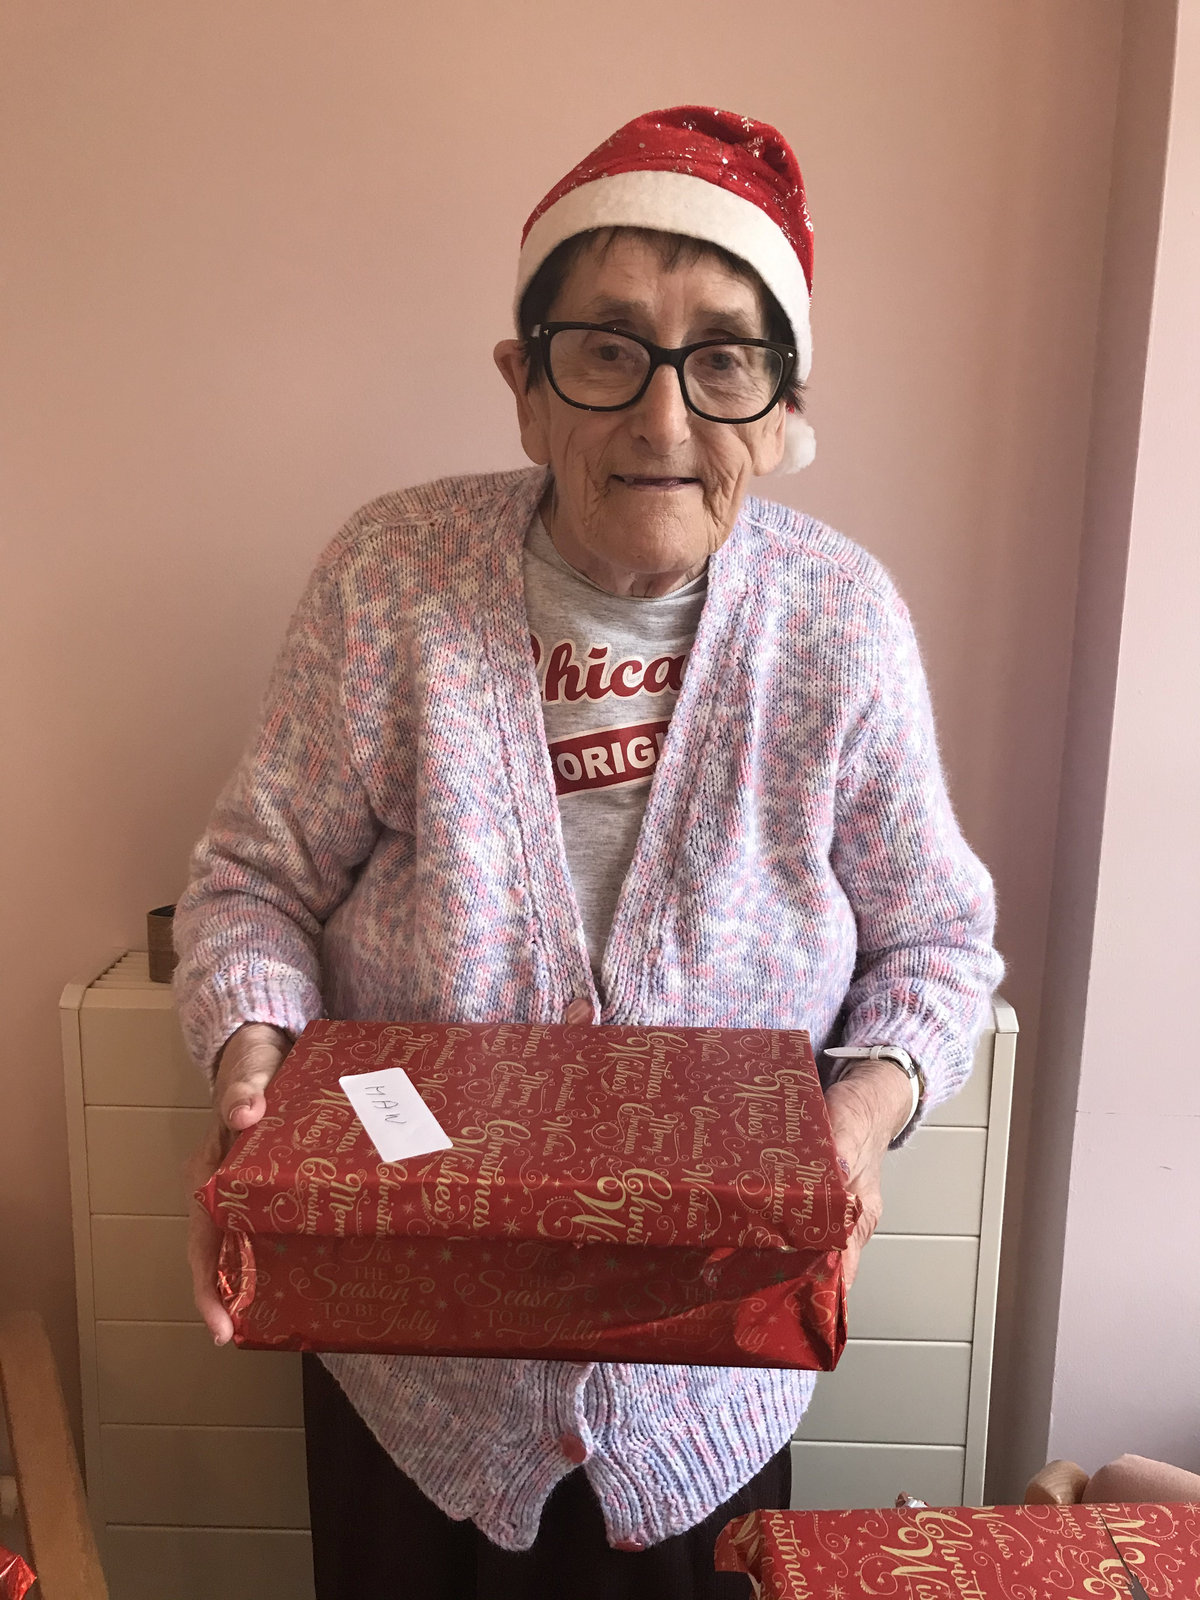 Grandmother holds up gift-filled shoebox created for people in need